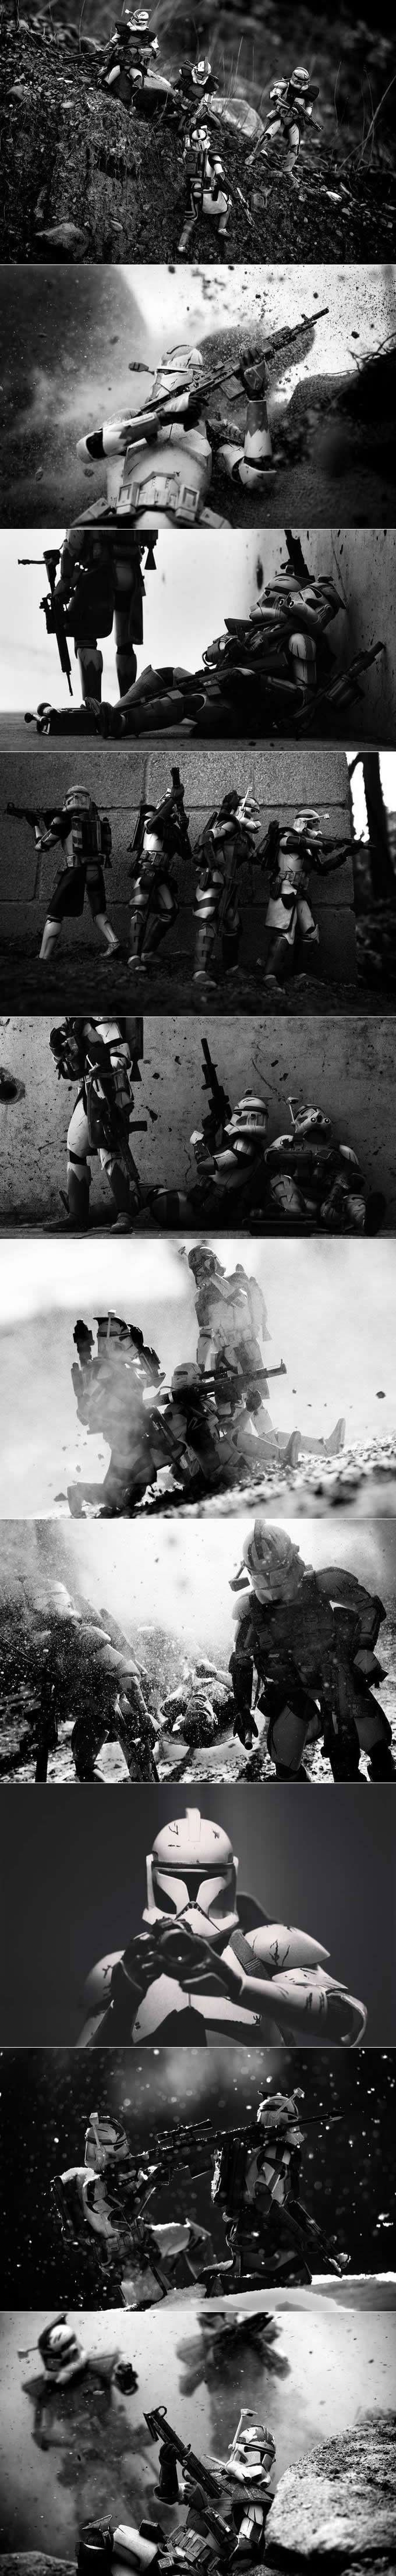 It's Just done with action figures but damn does it feel impactful! We never see the side of the enemy as tragic, or their loses as heartbreak.